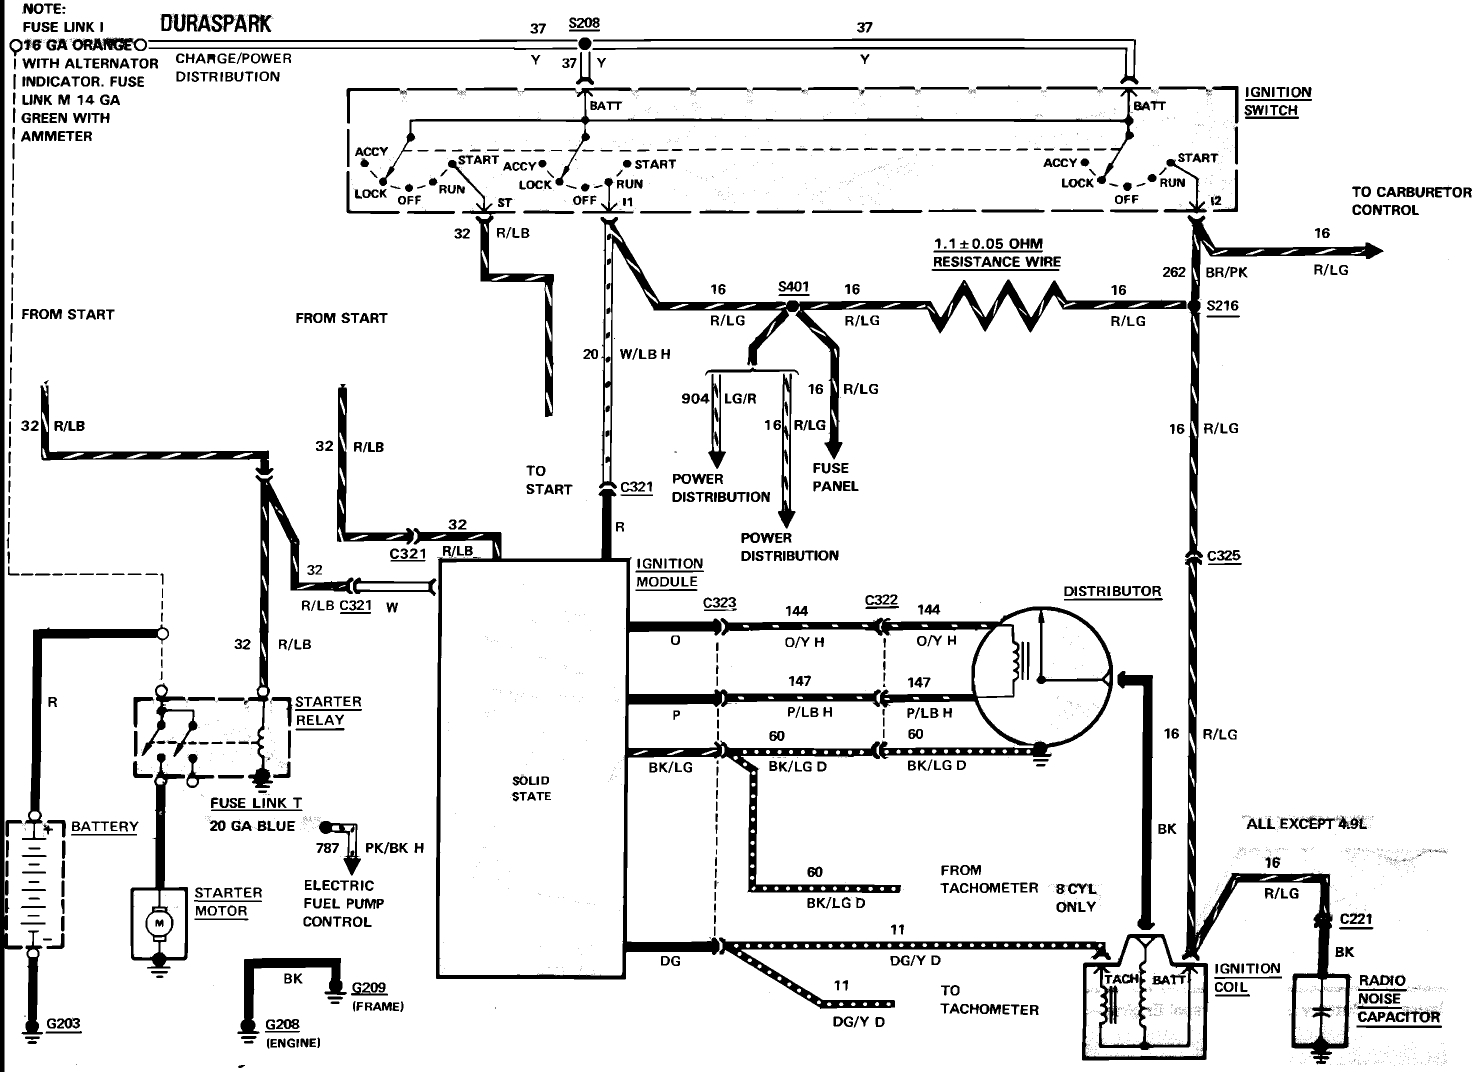 1989 ford f150 ignition wiring diagram | free wiring diagram 1984 ford e 350 wiring schematic 1984 ford e 350 wiring diagram free